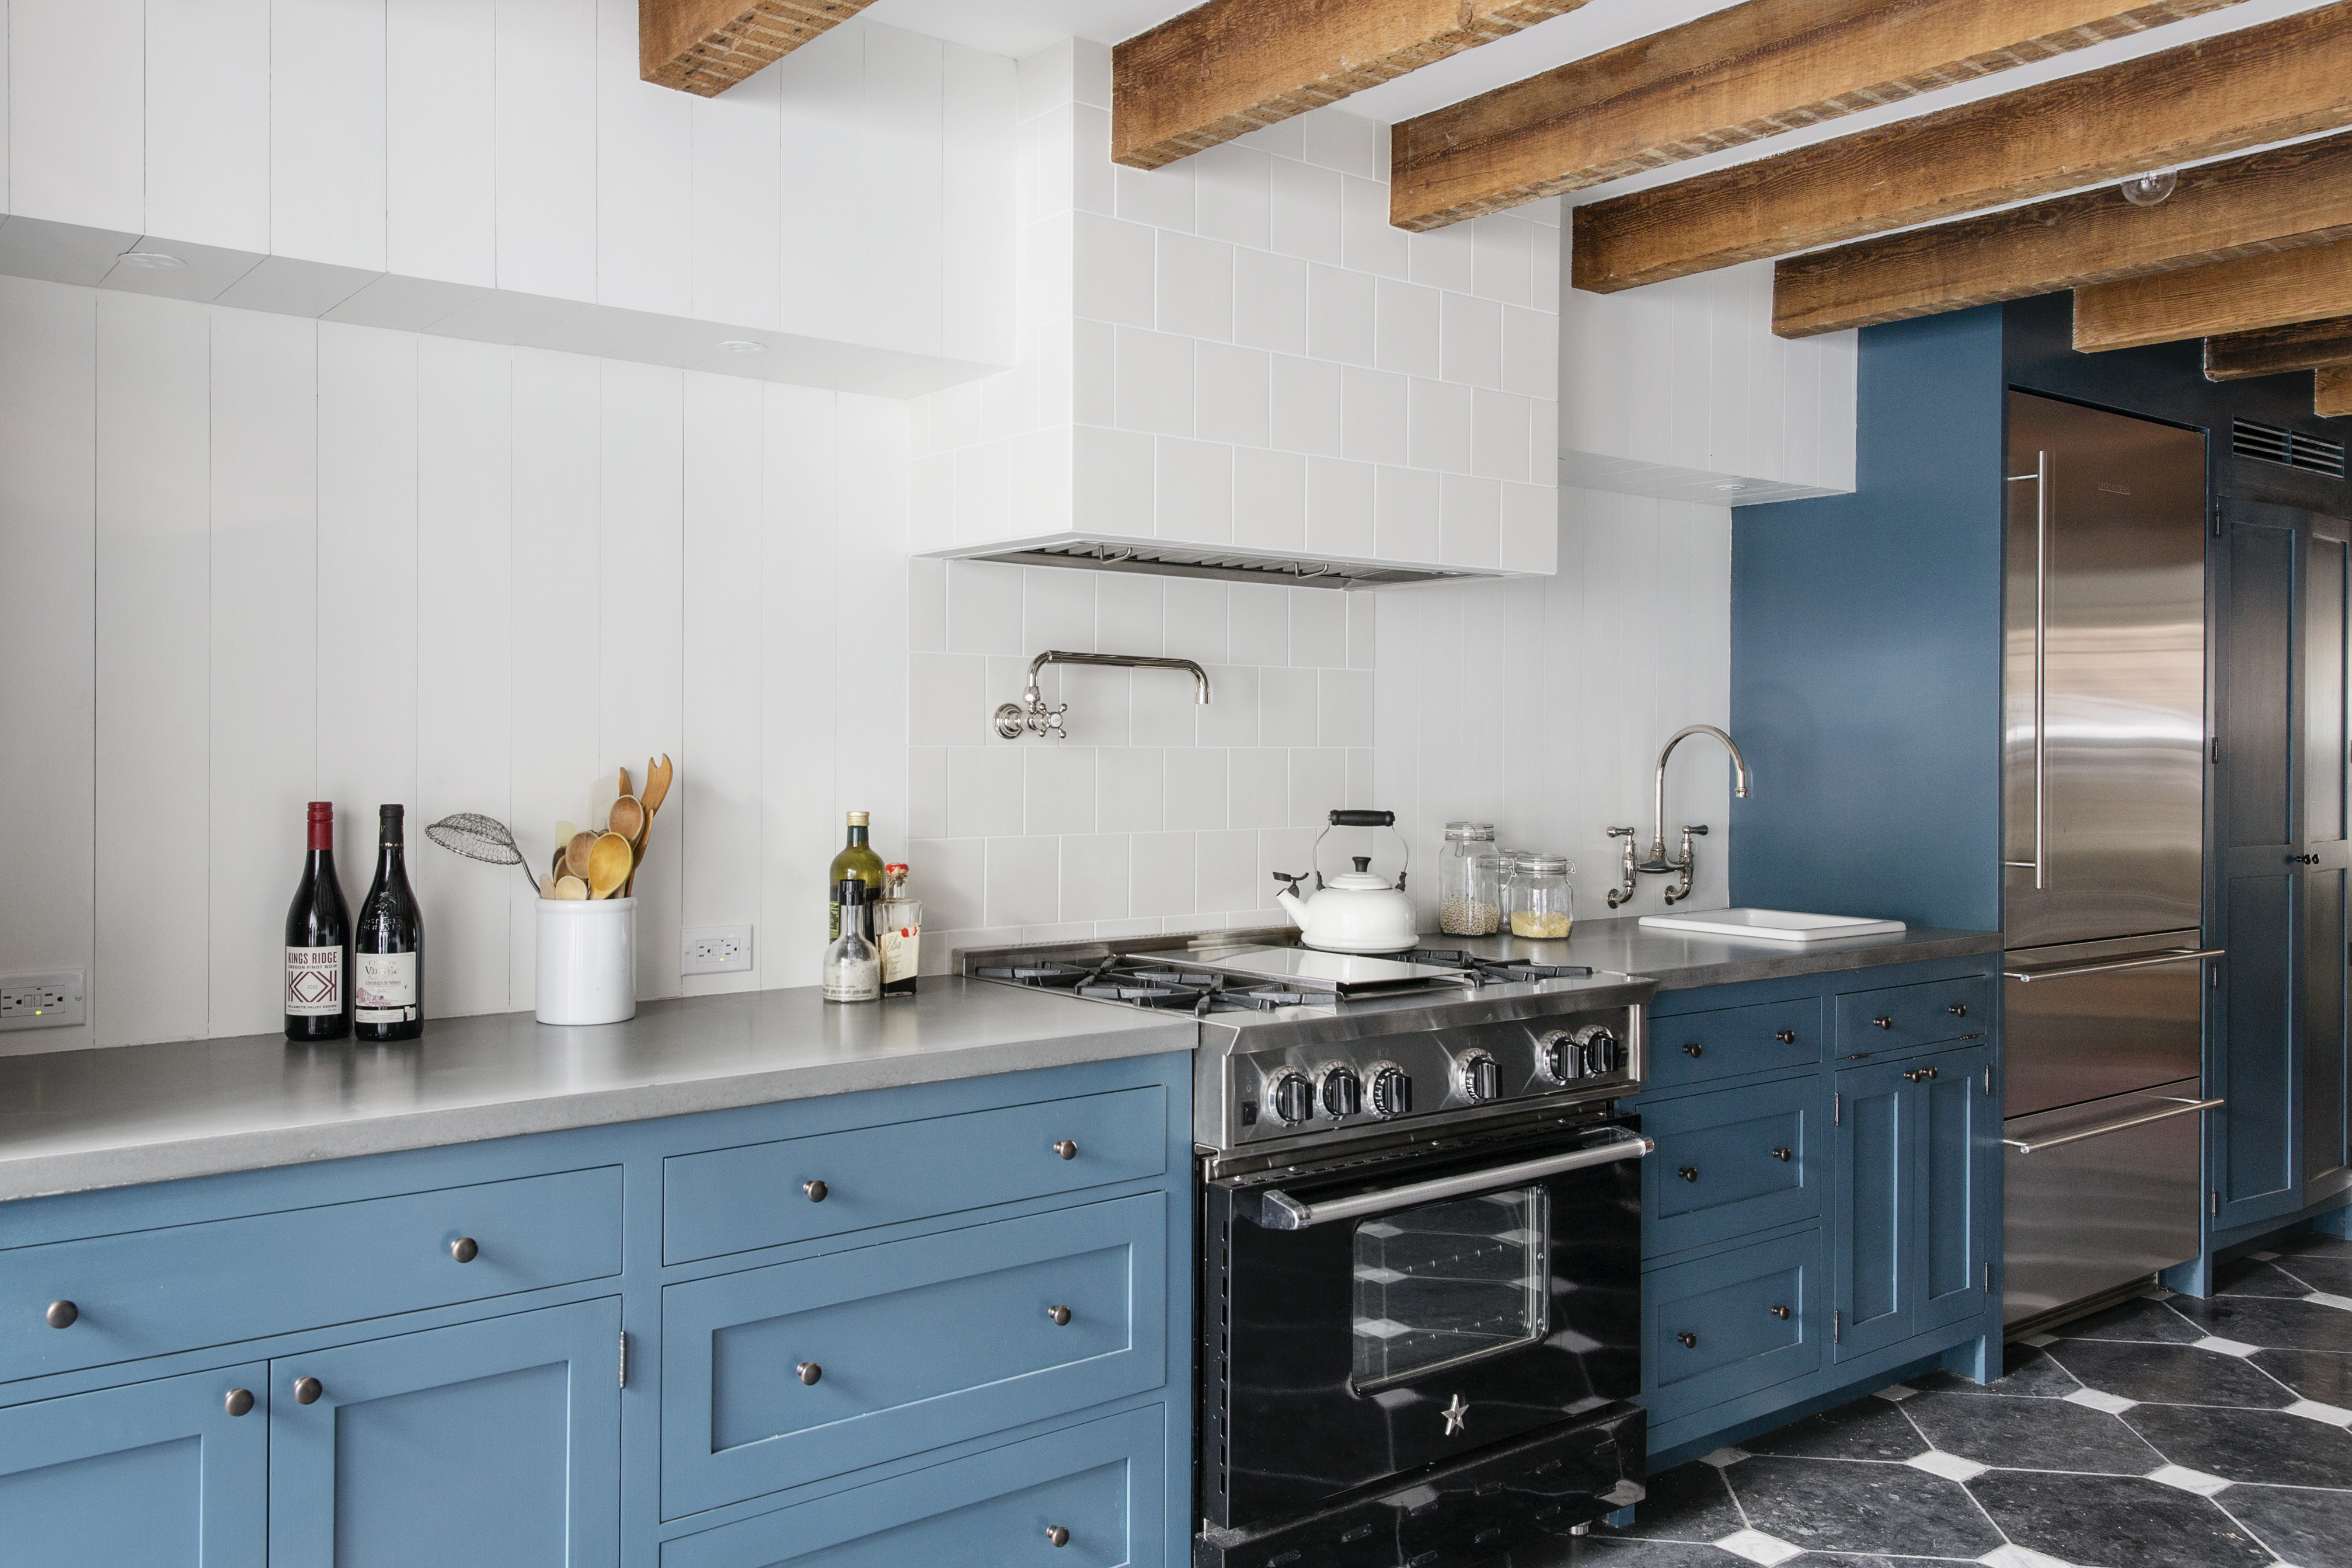 Ikea Griffe Küche Schablone 7 Colorful Kitchens That Will Make You Want To Paint Your